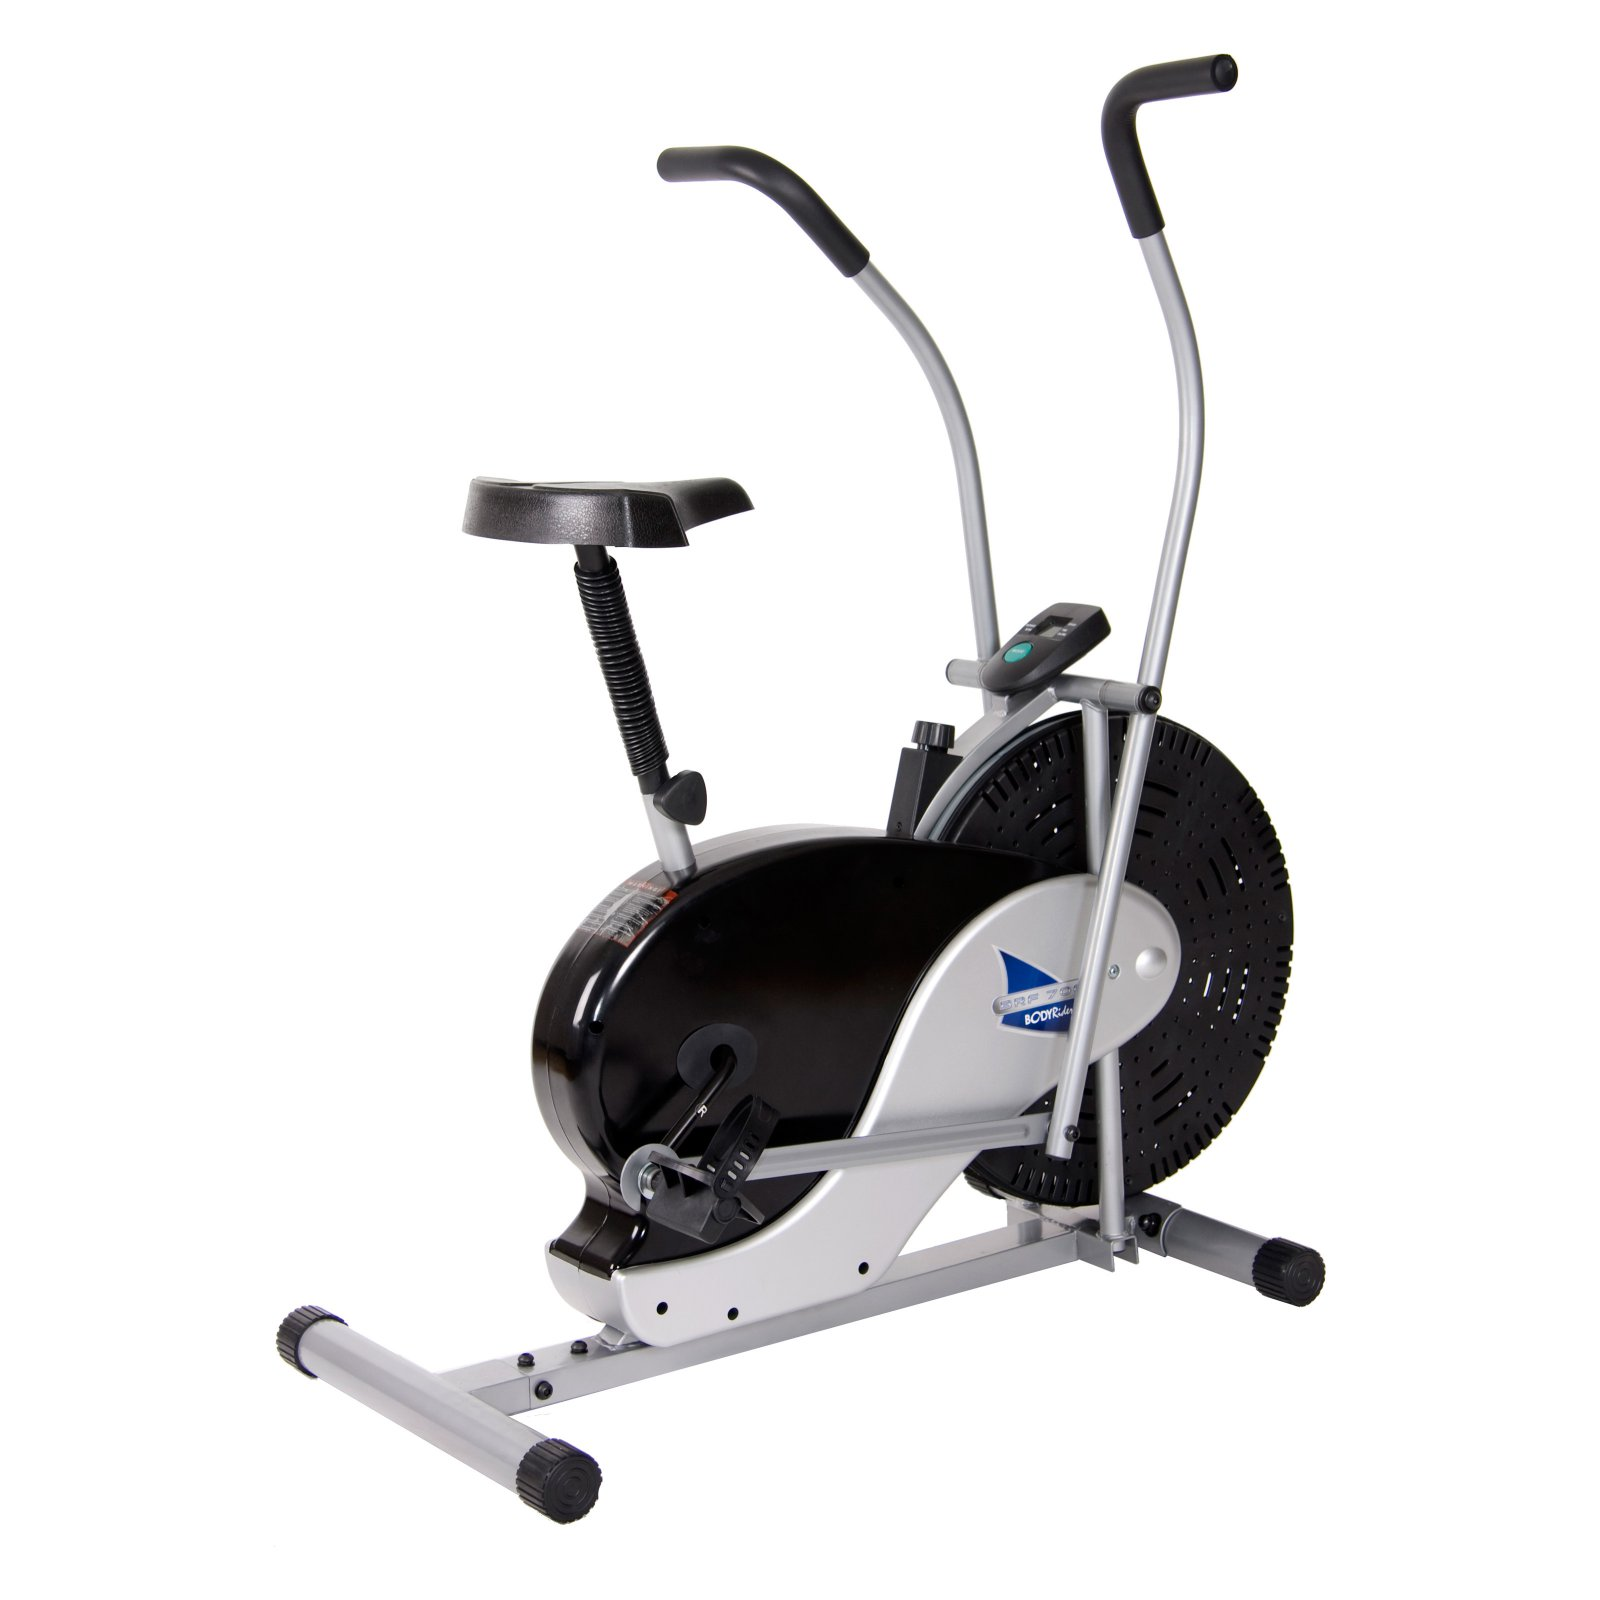 fan exercise bike. body rider brf700 fan upright exercise bike k